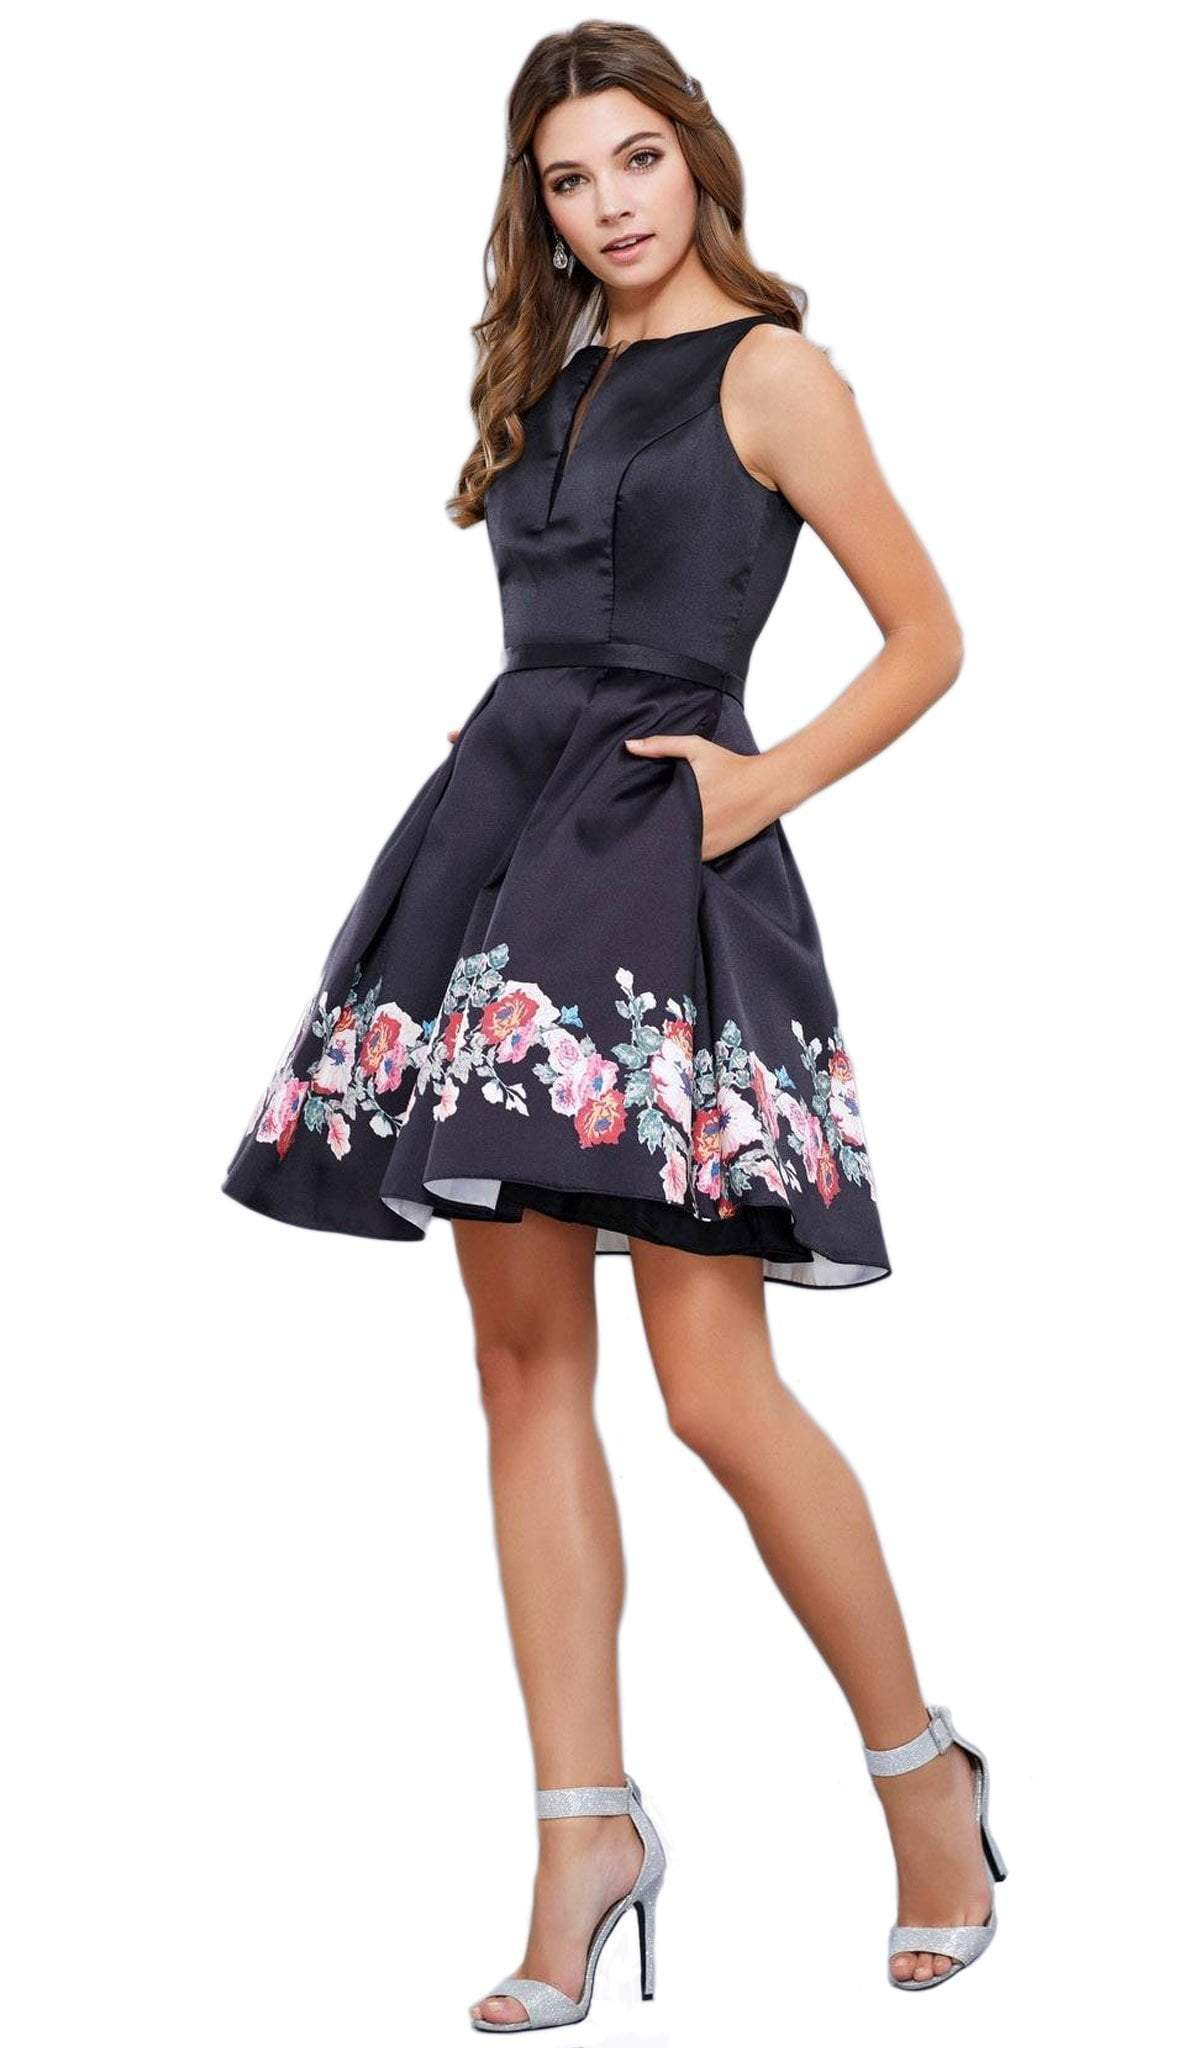 Nox Anabel - Bateau Floral-Printed Cocktail Dress 6233SC